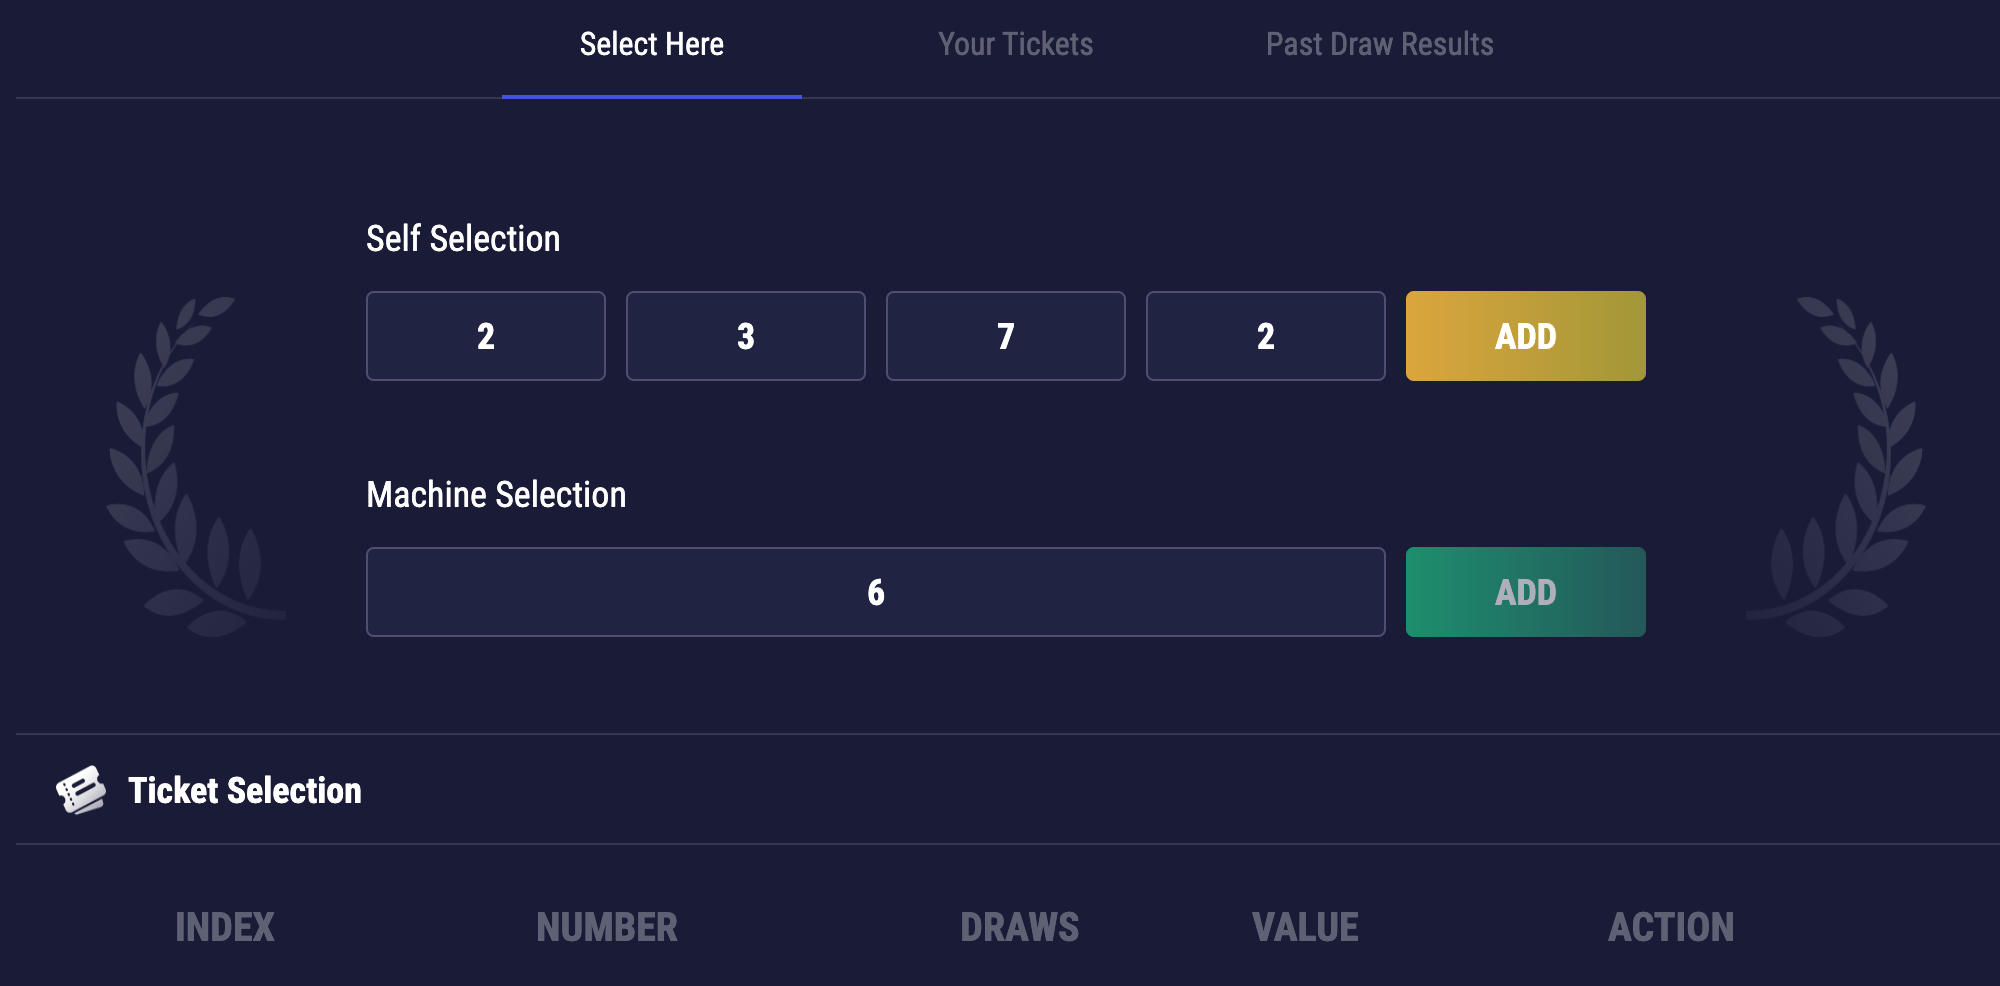 Ticket selection area